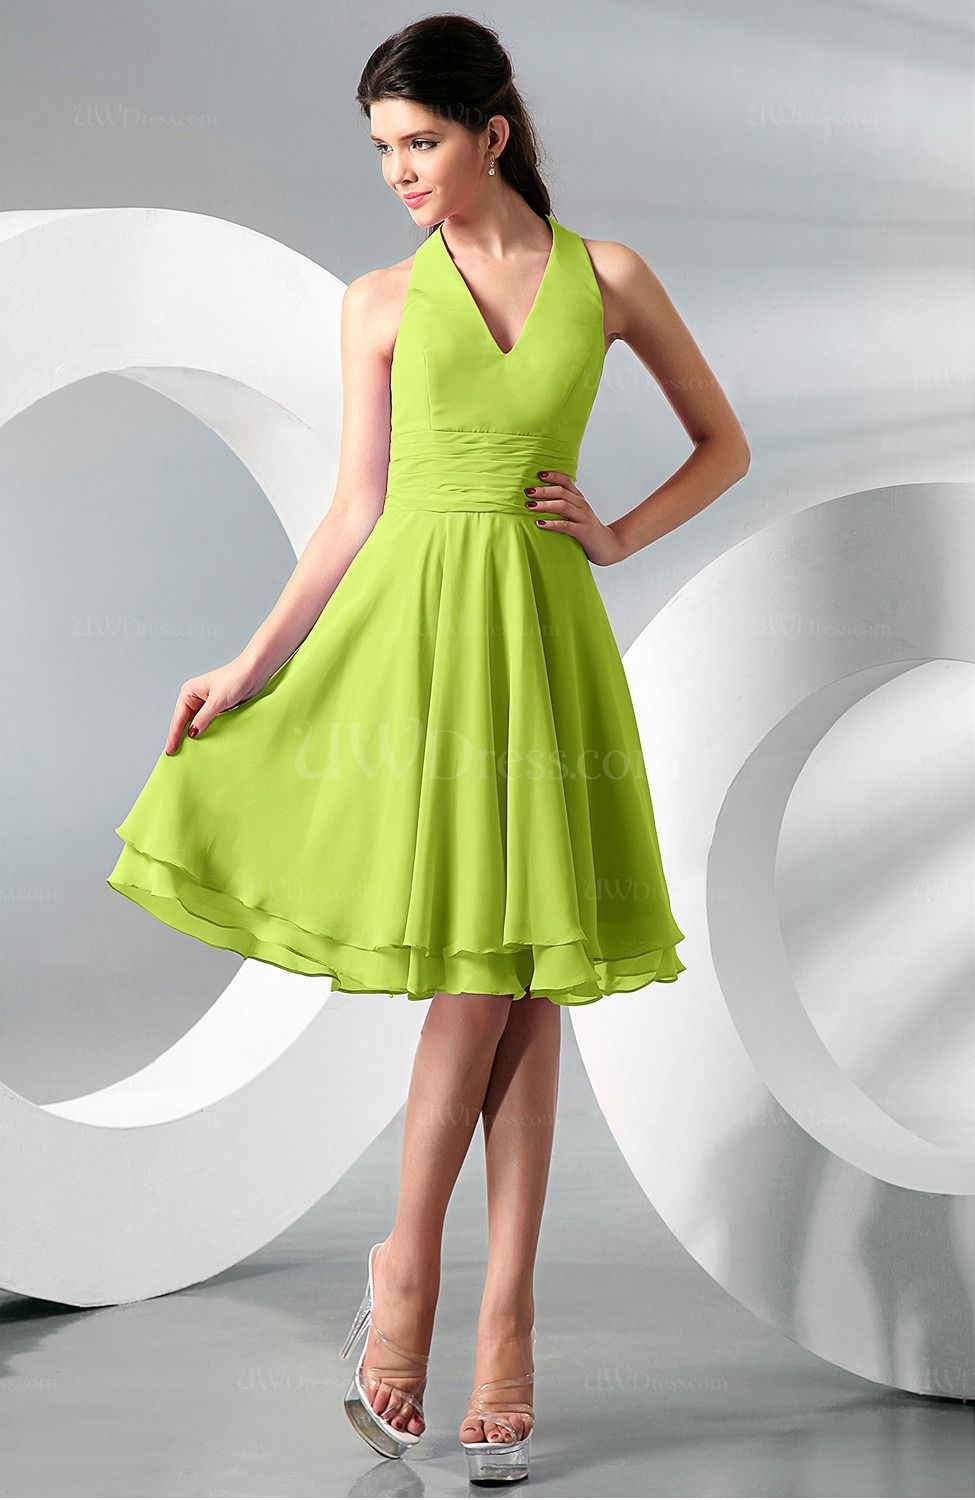 Lime green bridesmaid dresses wedding 3 pinterest chiffon lime green bridesmaid dresses ombrellifo Images